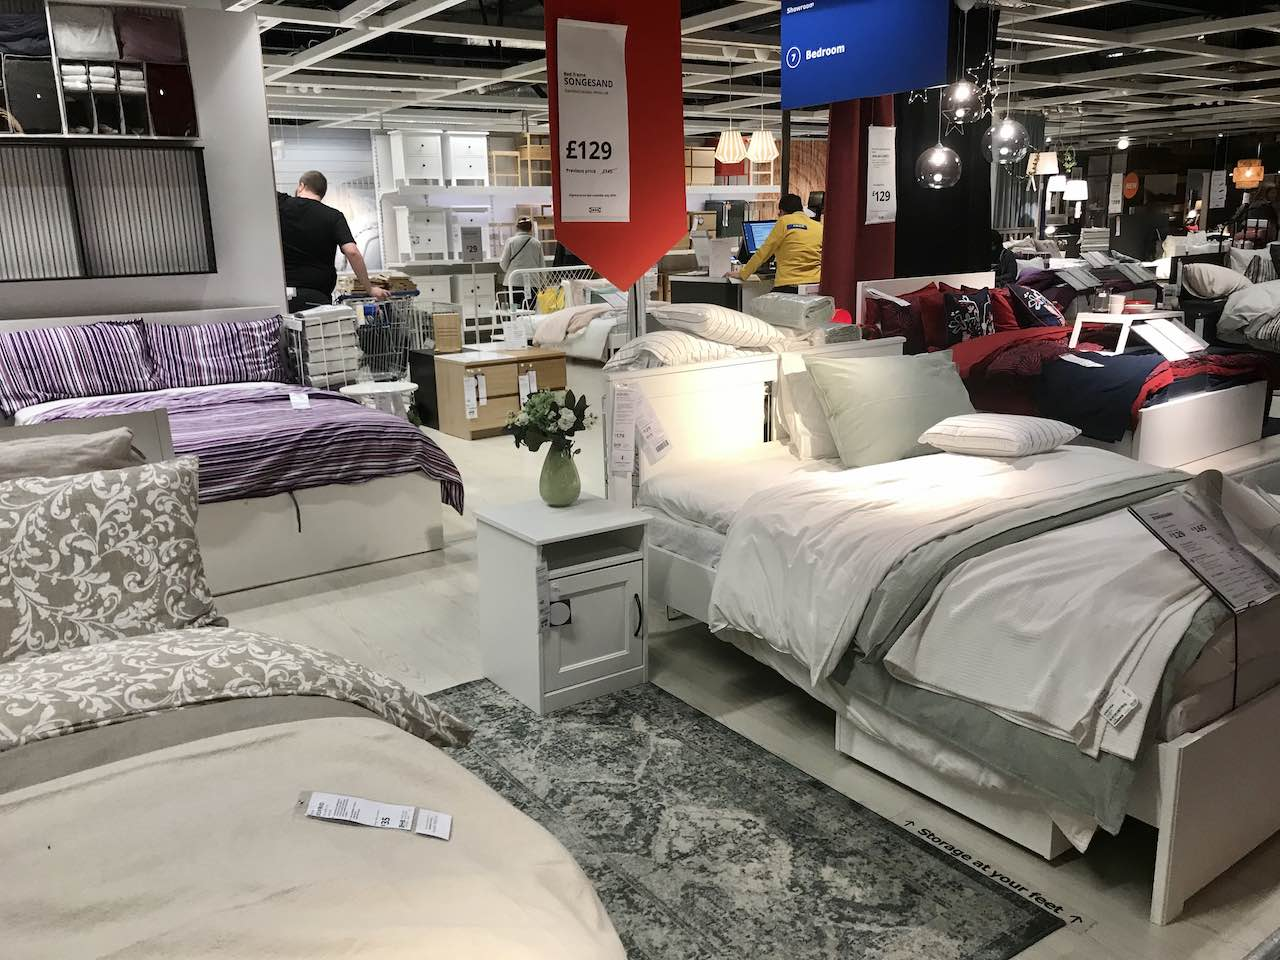 An ikea bedroom showroom